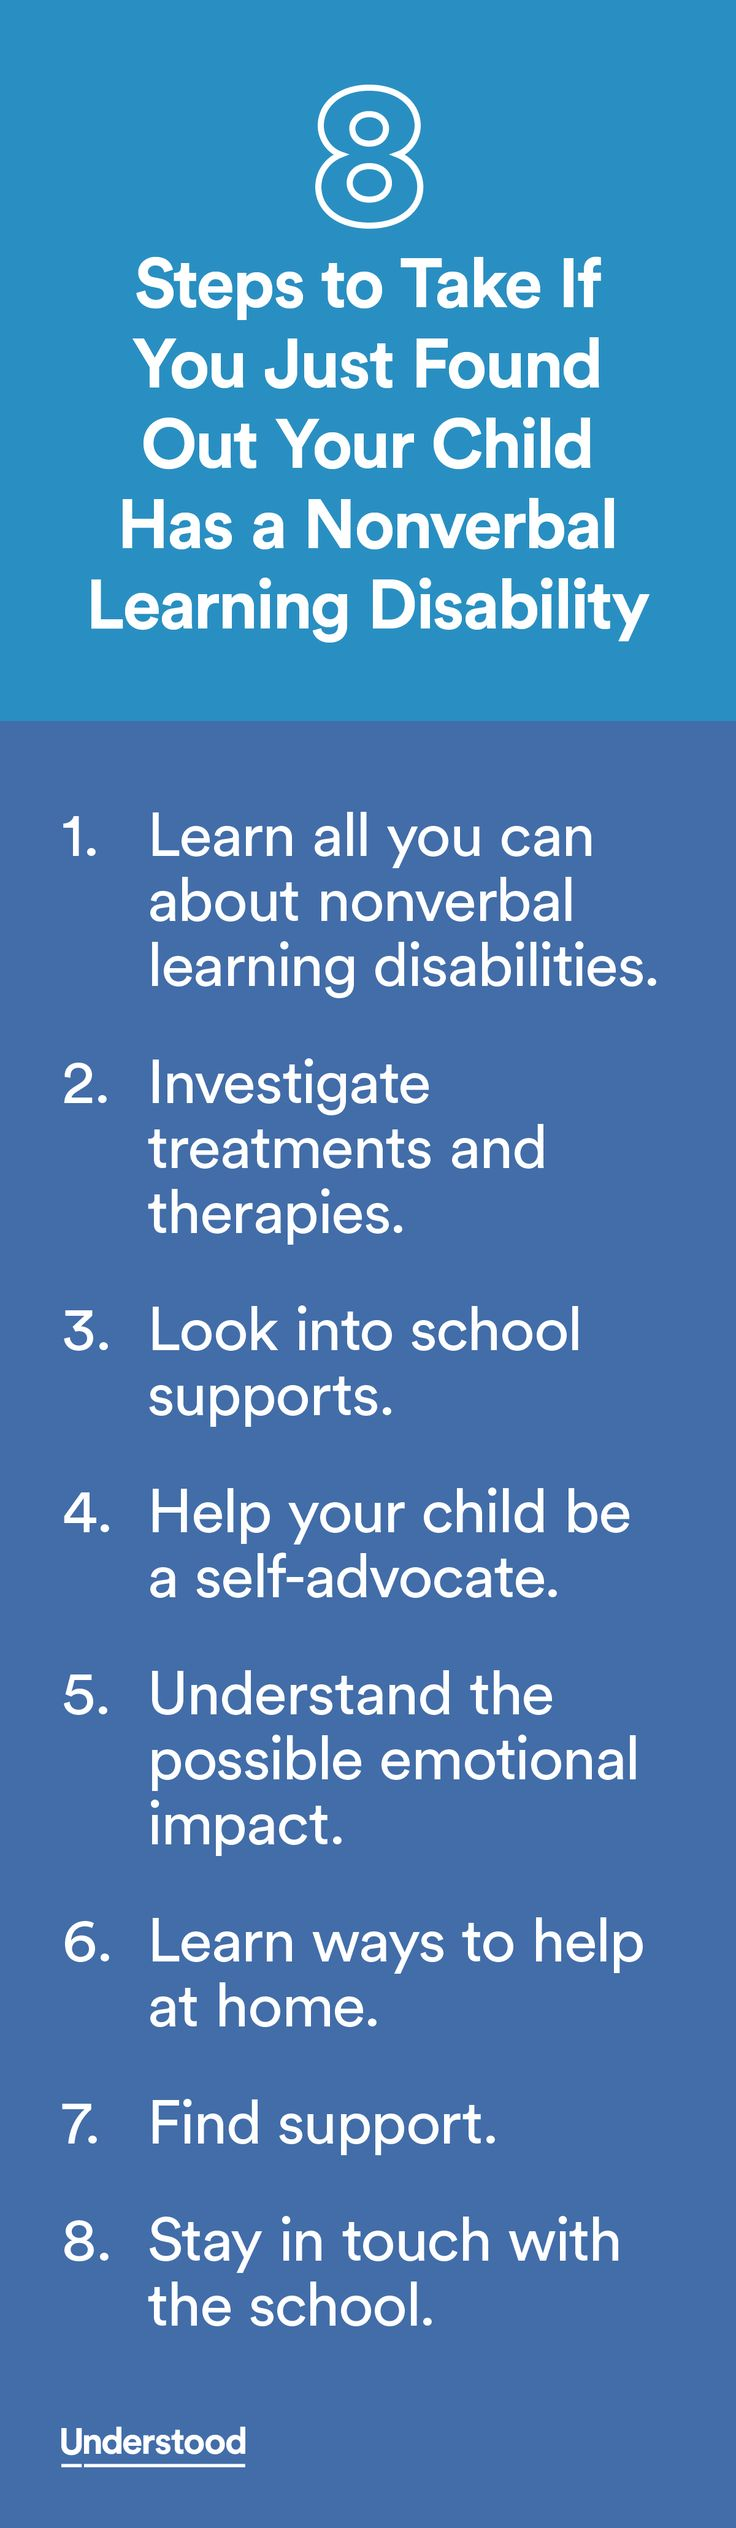 If you recently found out your child has a nonverbal learning disability (NVLD), you may feel unclear about what to do next. These steps can offer guidance about ways to help him at school, at home and as you help him plan his future.